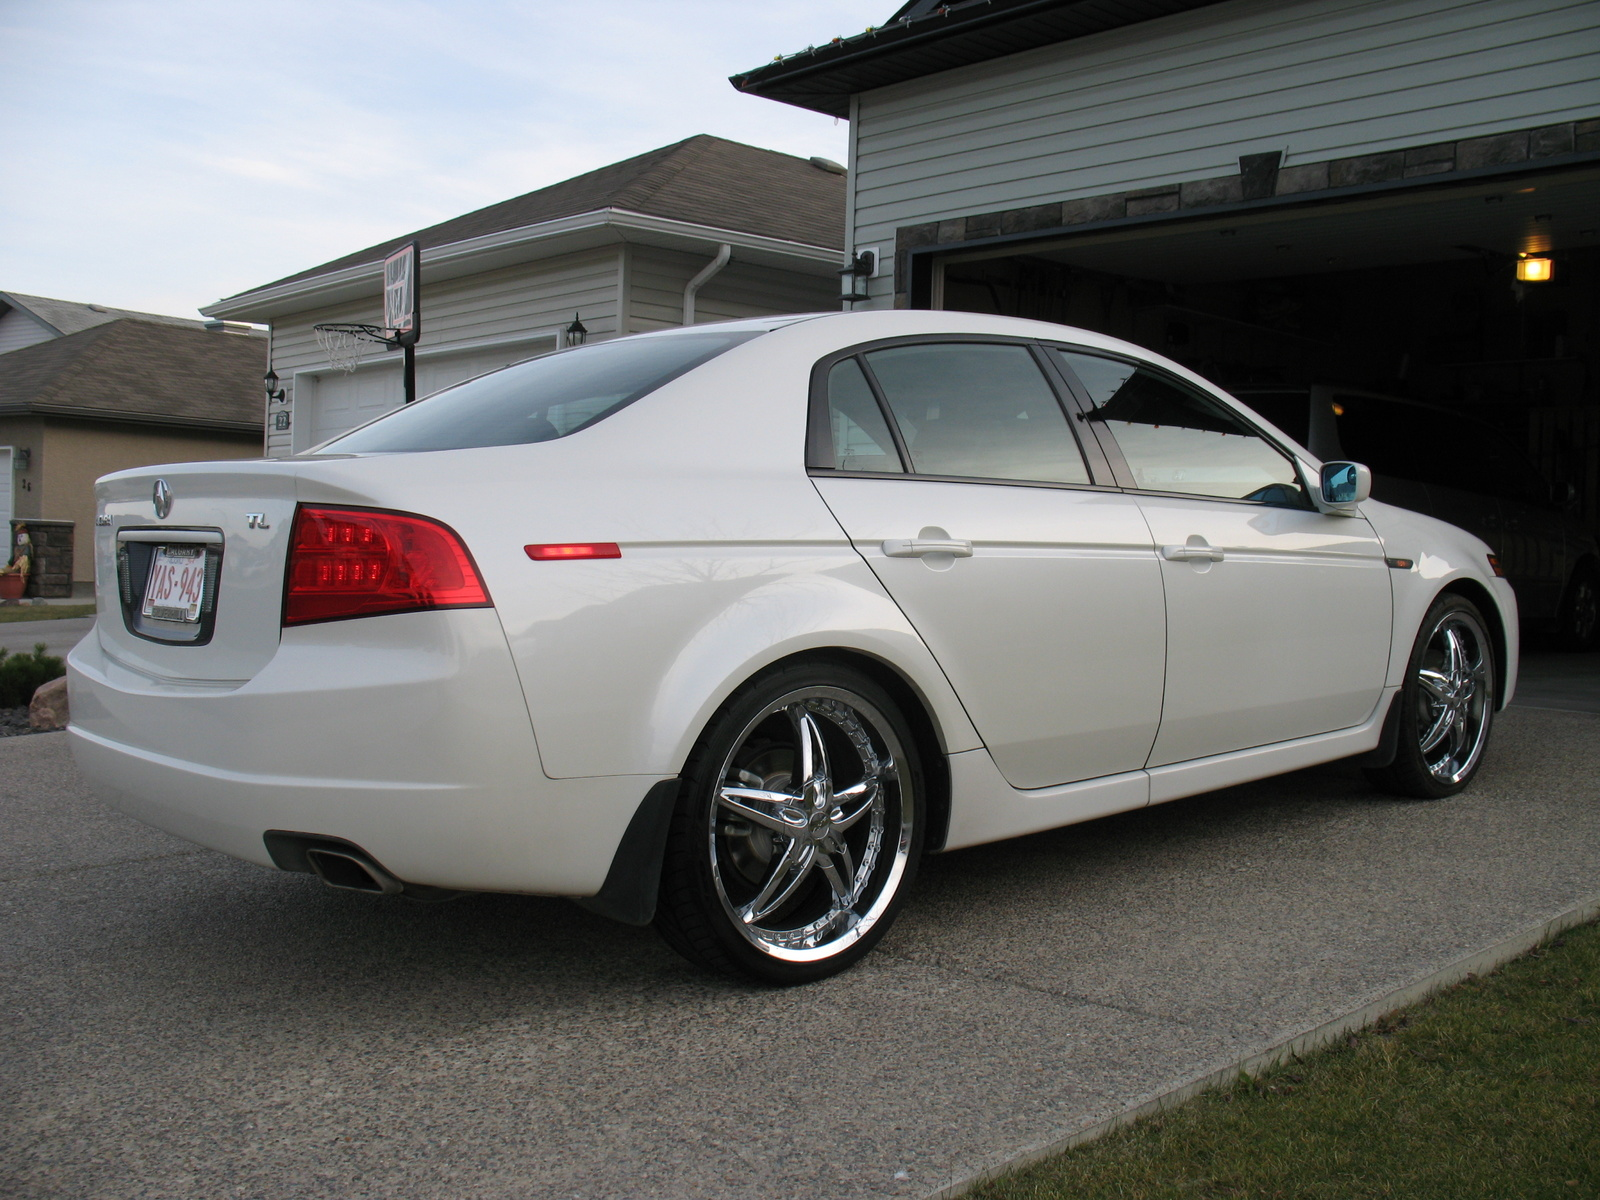 Acura Tl Parts Acura Tl Accessories Autoanything | Autos Post